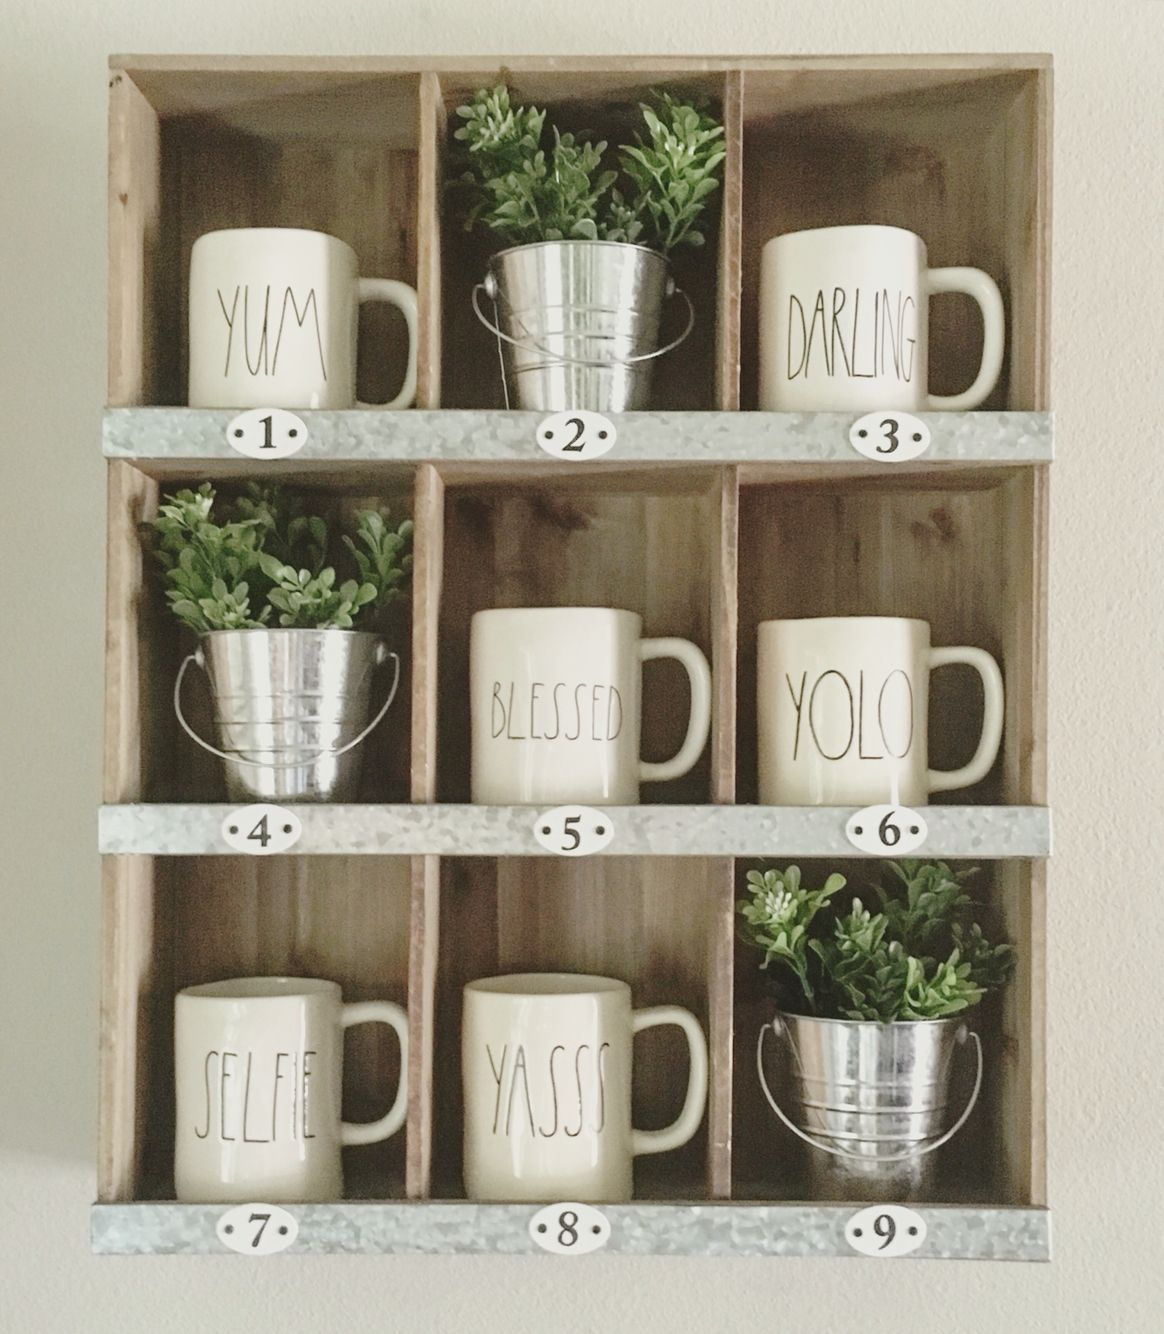 9 Slot Target Cubby With Rae Dunn Mugs Farmhouse Style Coffee Mug Storage Dunn Coffee Mug Storage Rae Dunn